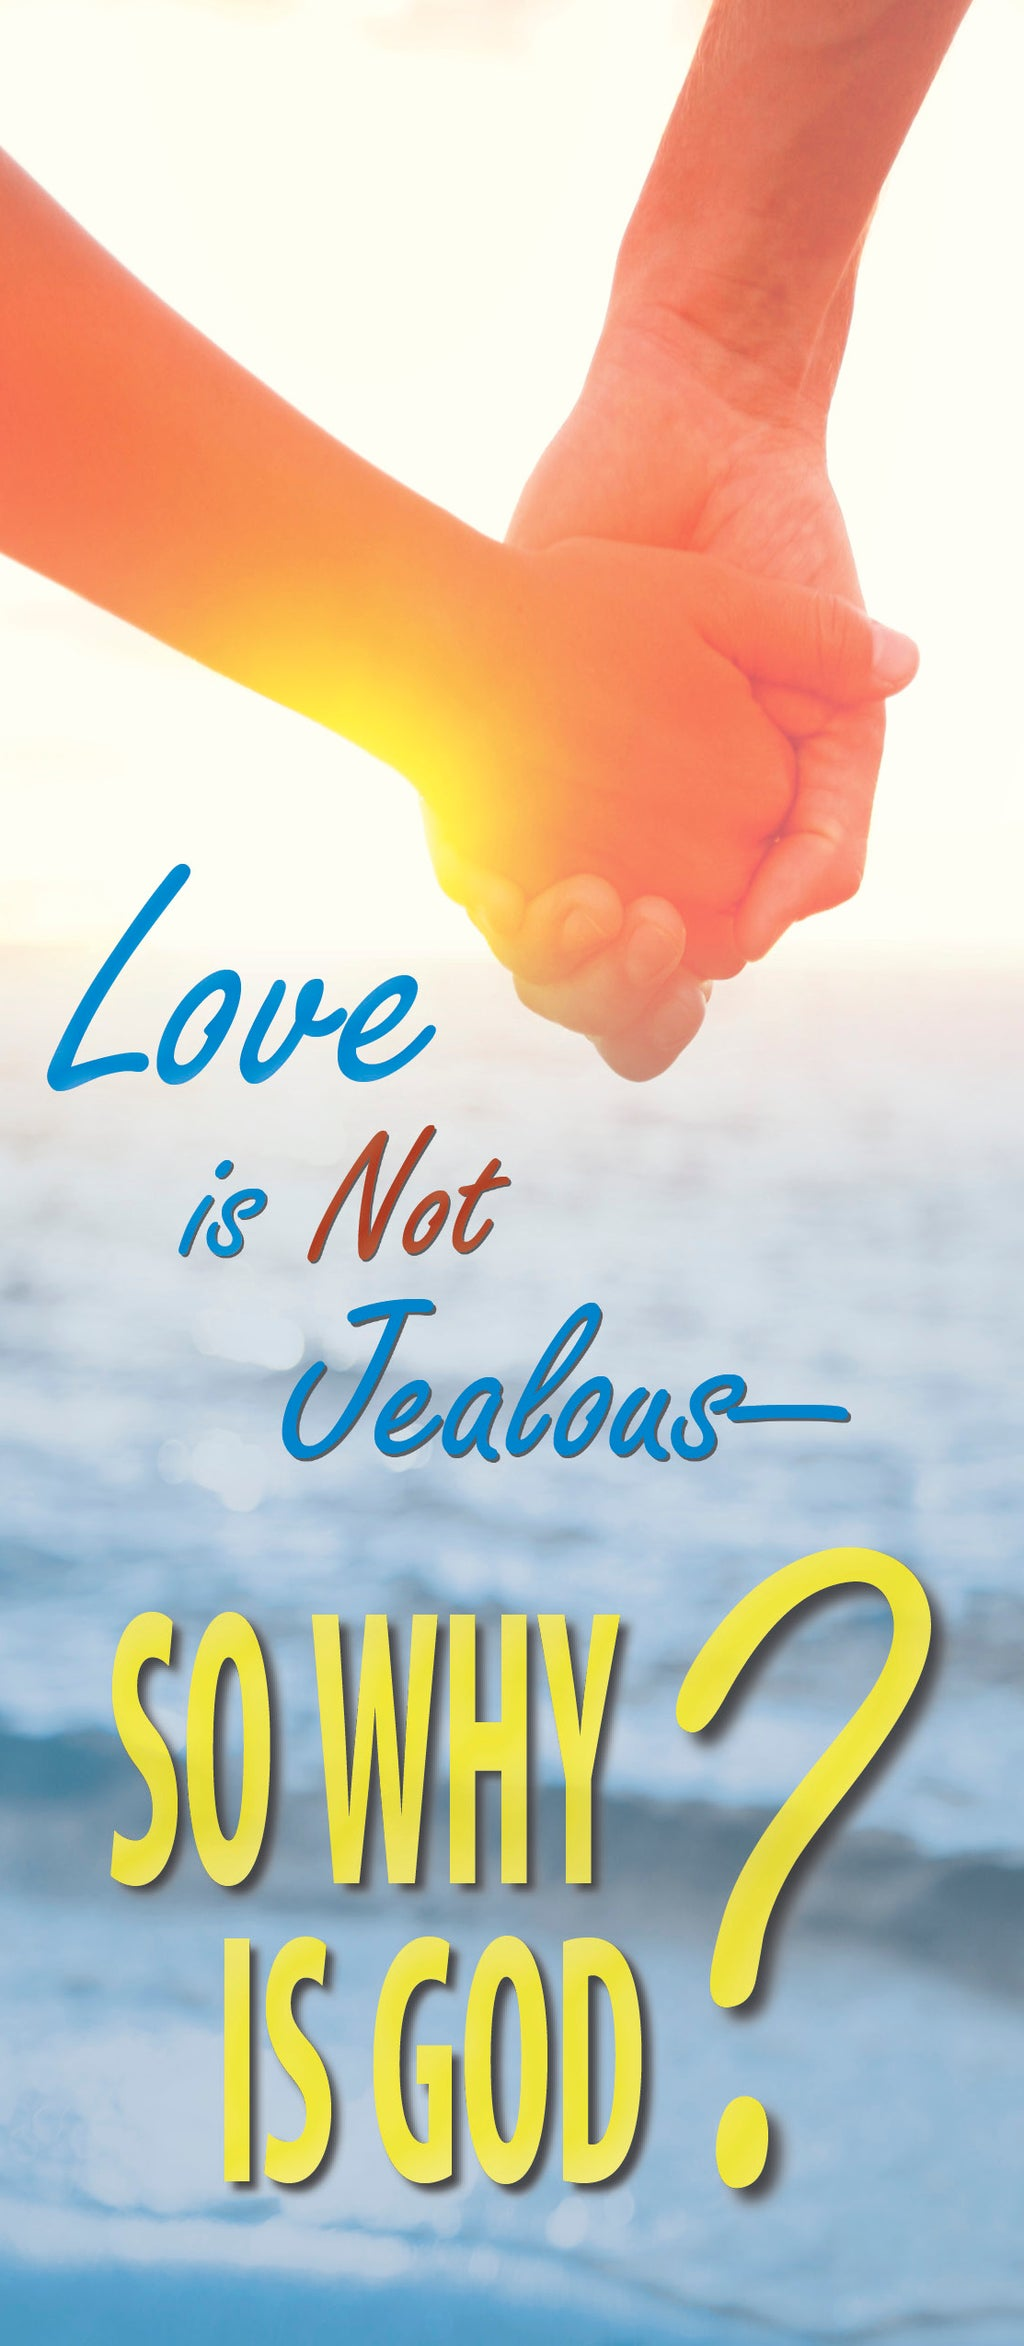 Love is not Jealous—So Why is God?